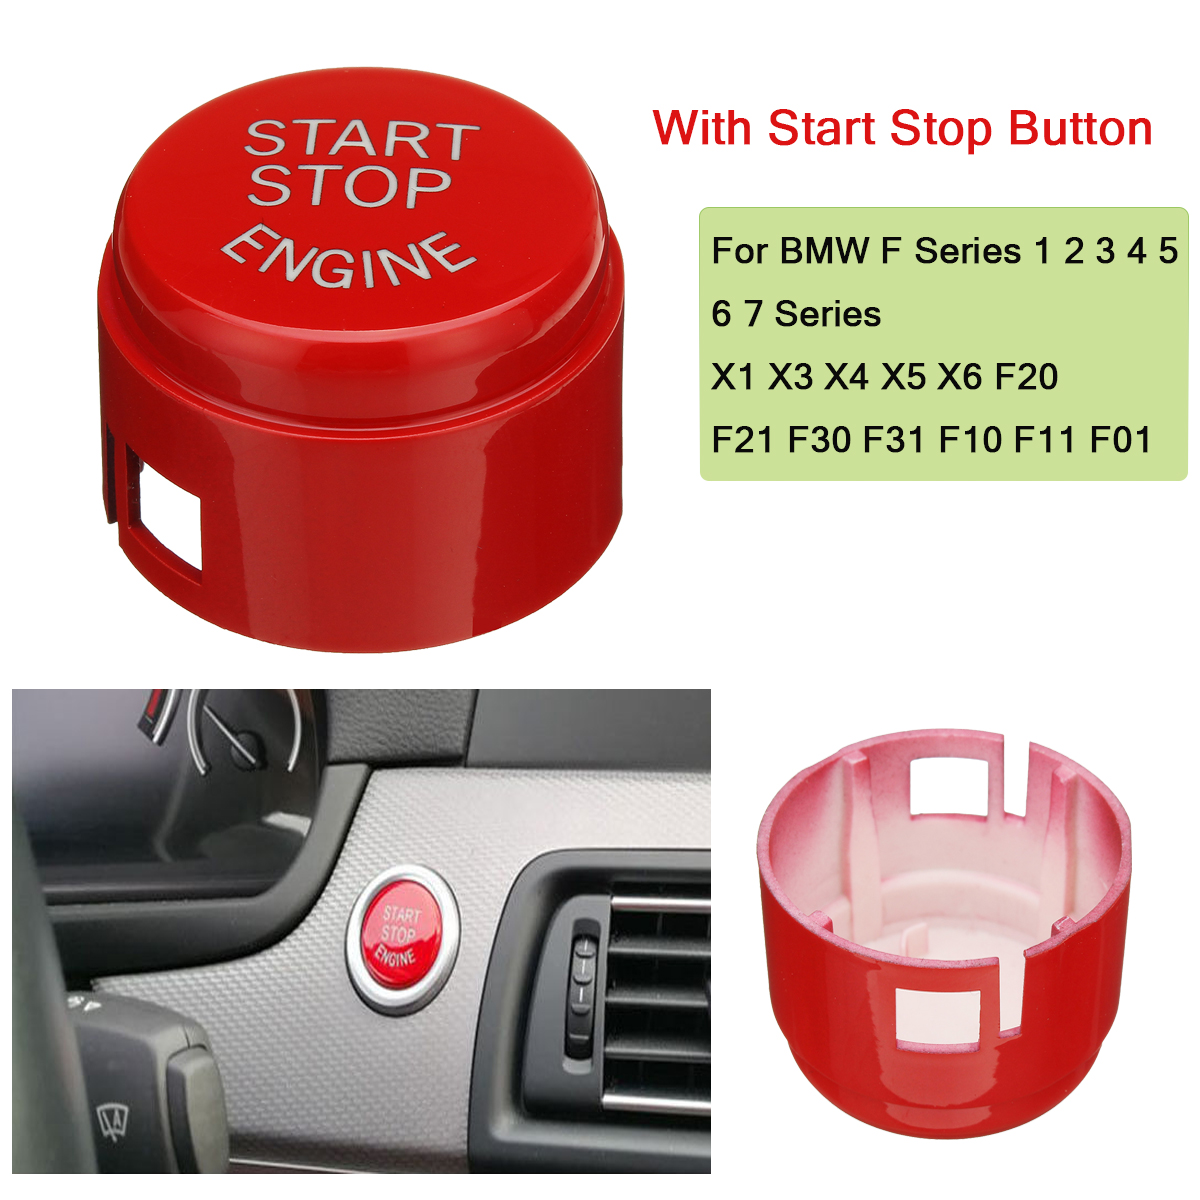 Car Engine Start Button Replace Cover for BMW F Series 1 2 3 4 5 6 7 Series X1 X3 X4 X5 X6